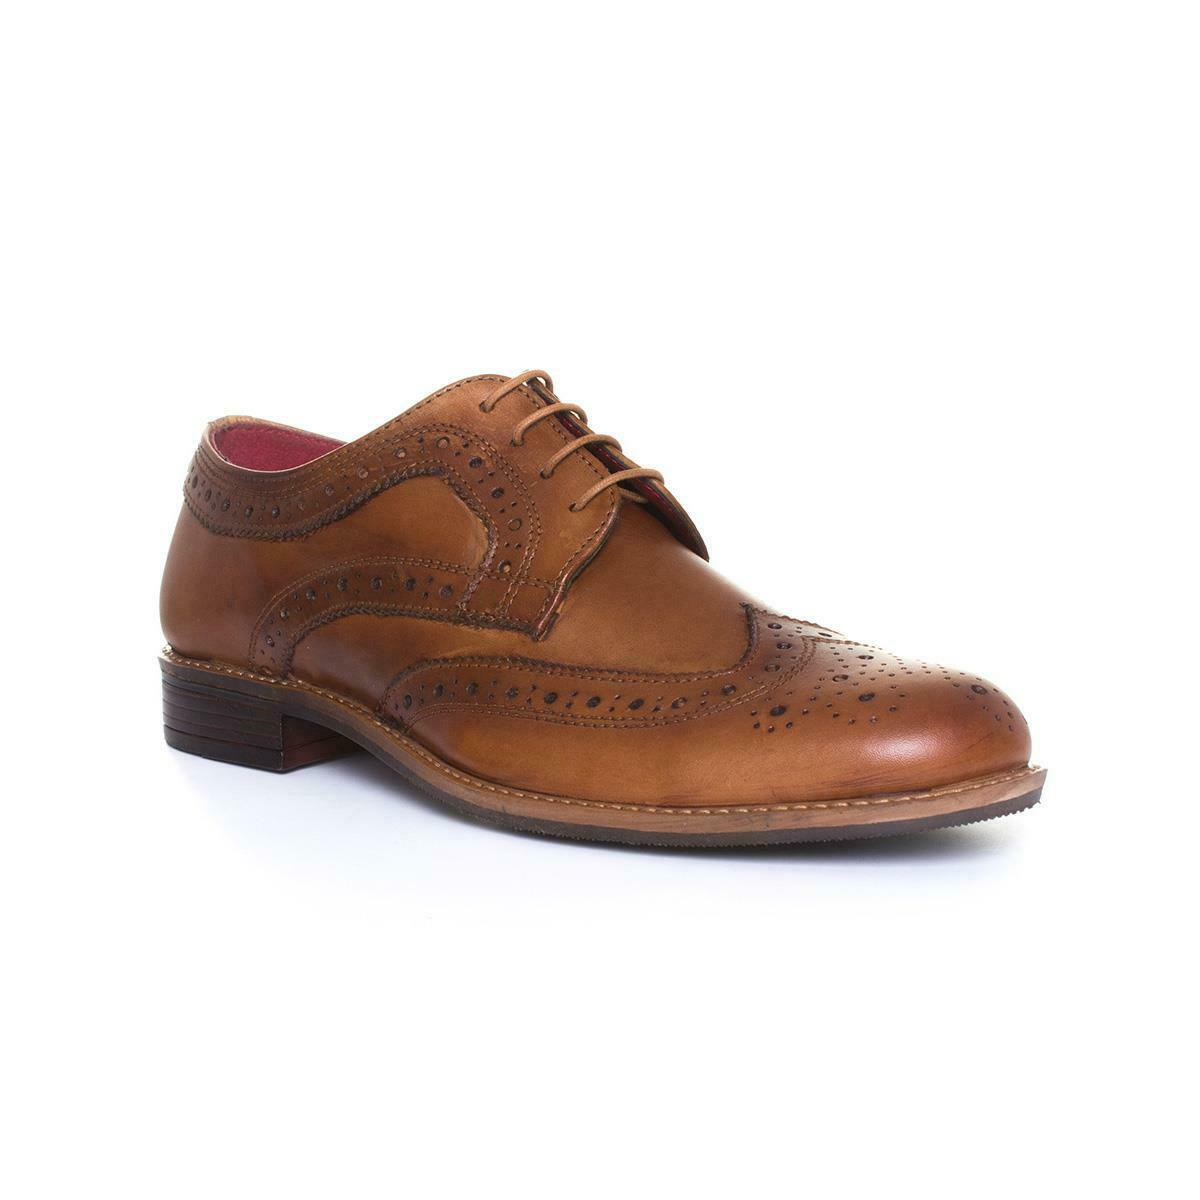 Mens Brogue Shoe Lace Up Shoe in Brown by Silver Street Size UK 7,8,9,10,11,12